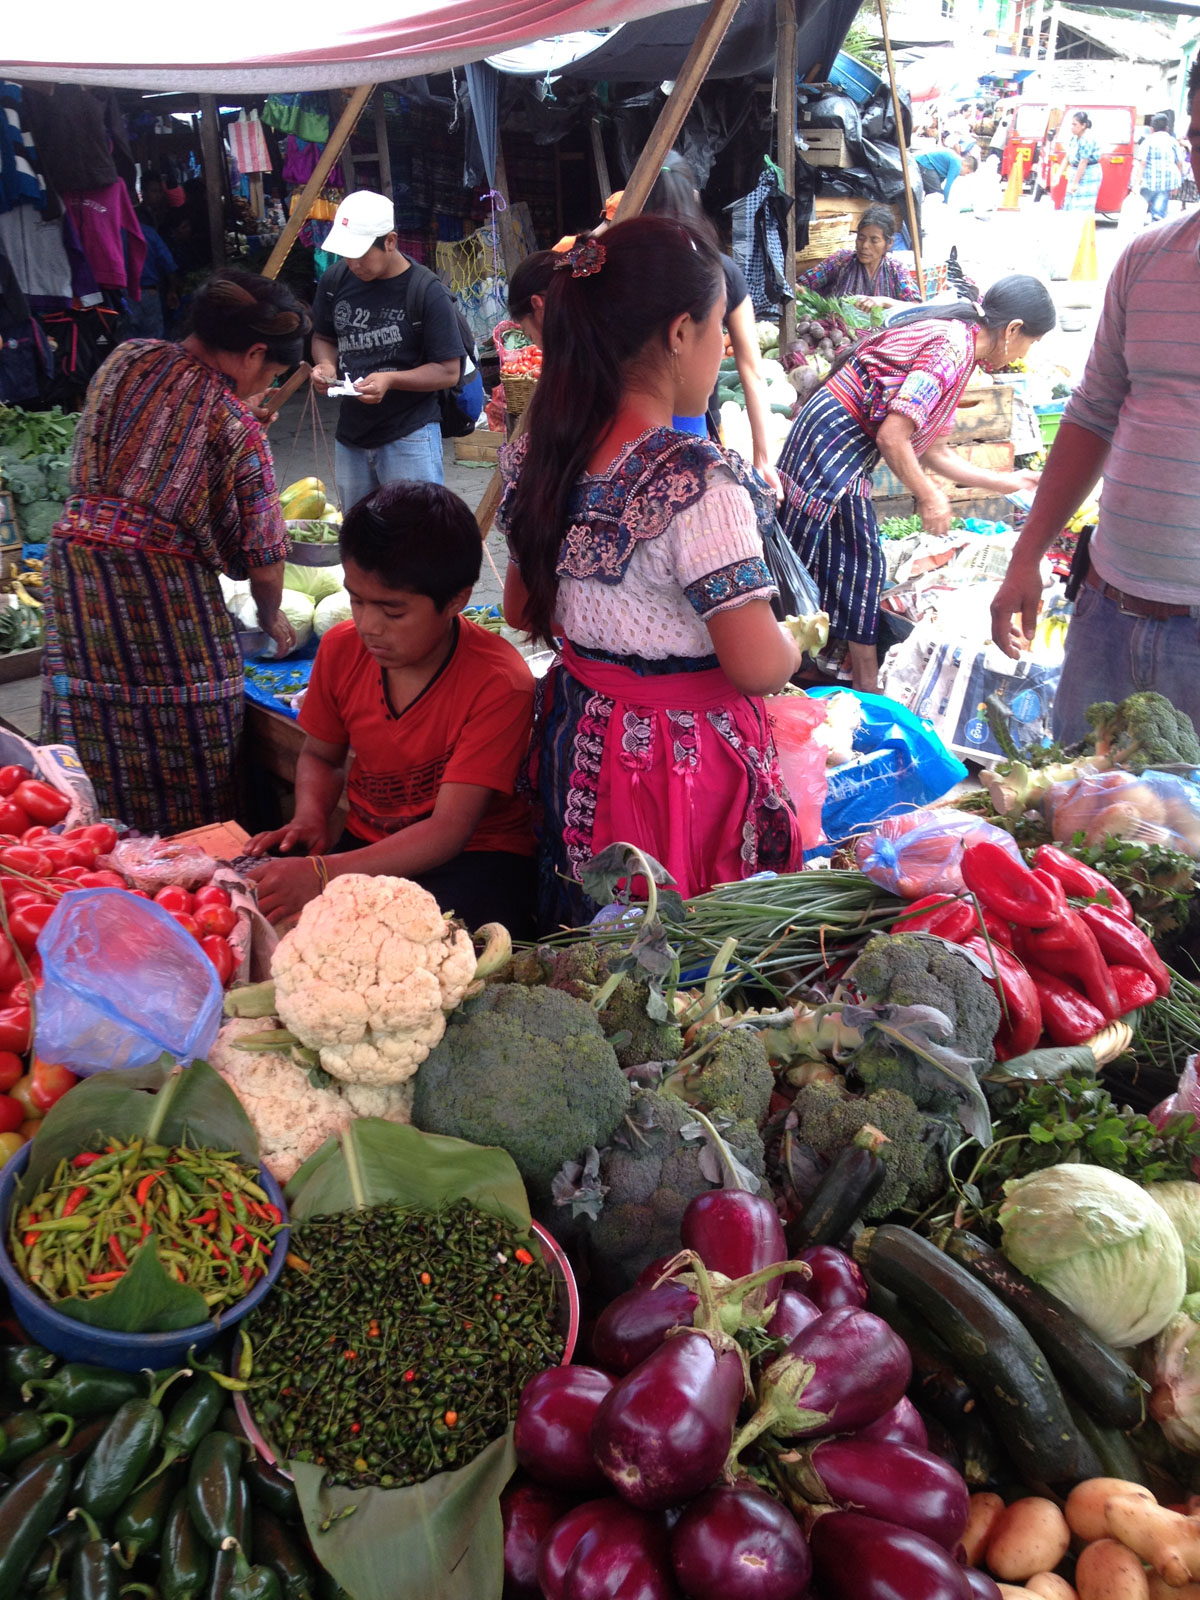 Local market in Panajachel, Guatemala